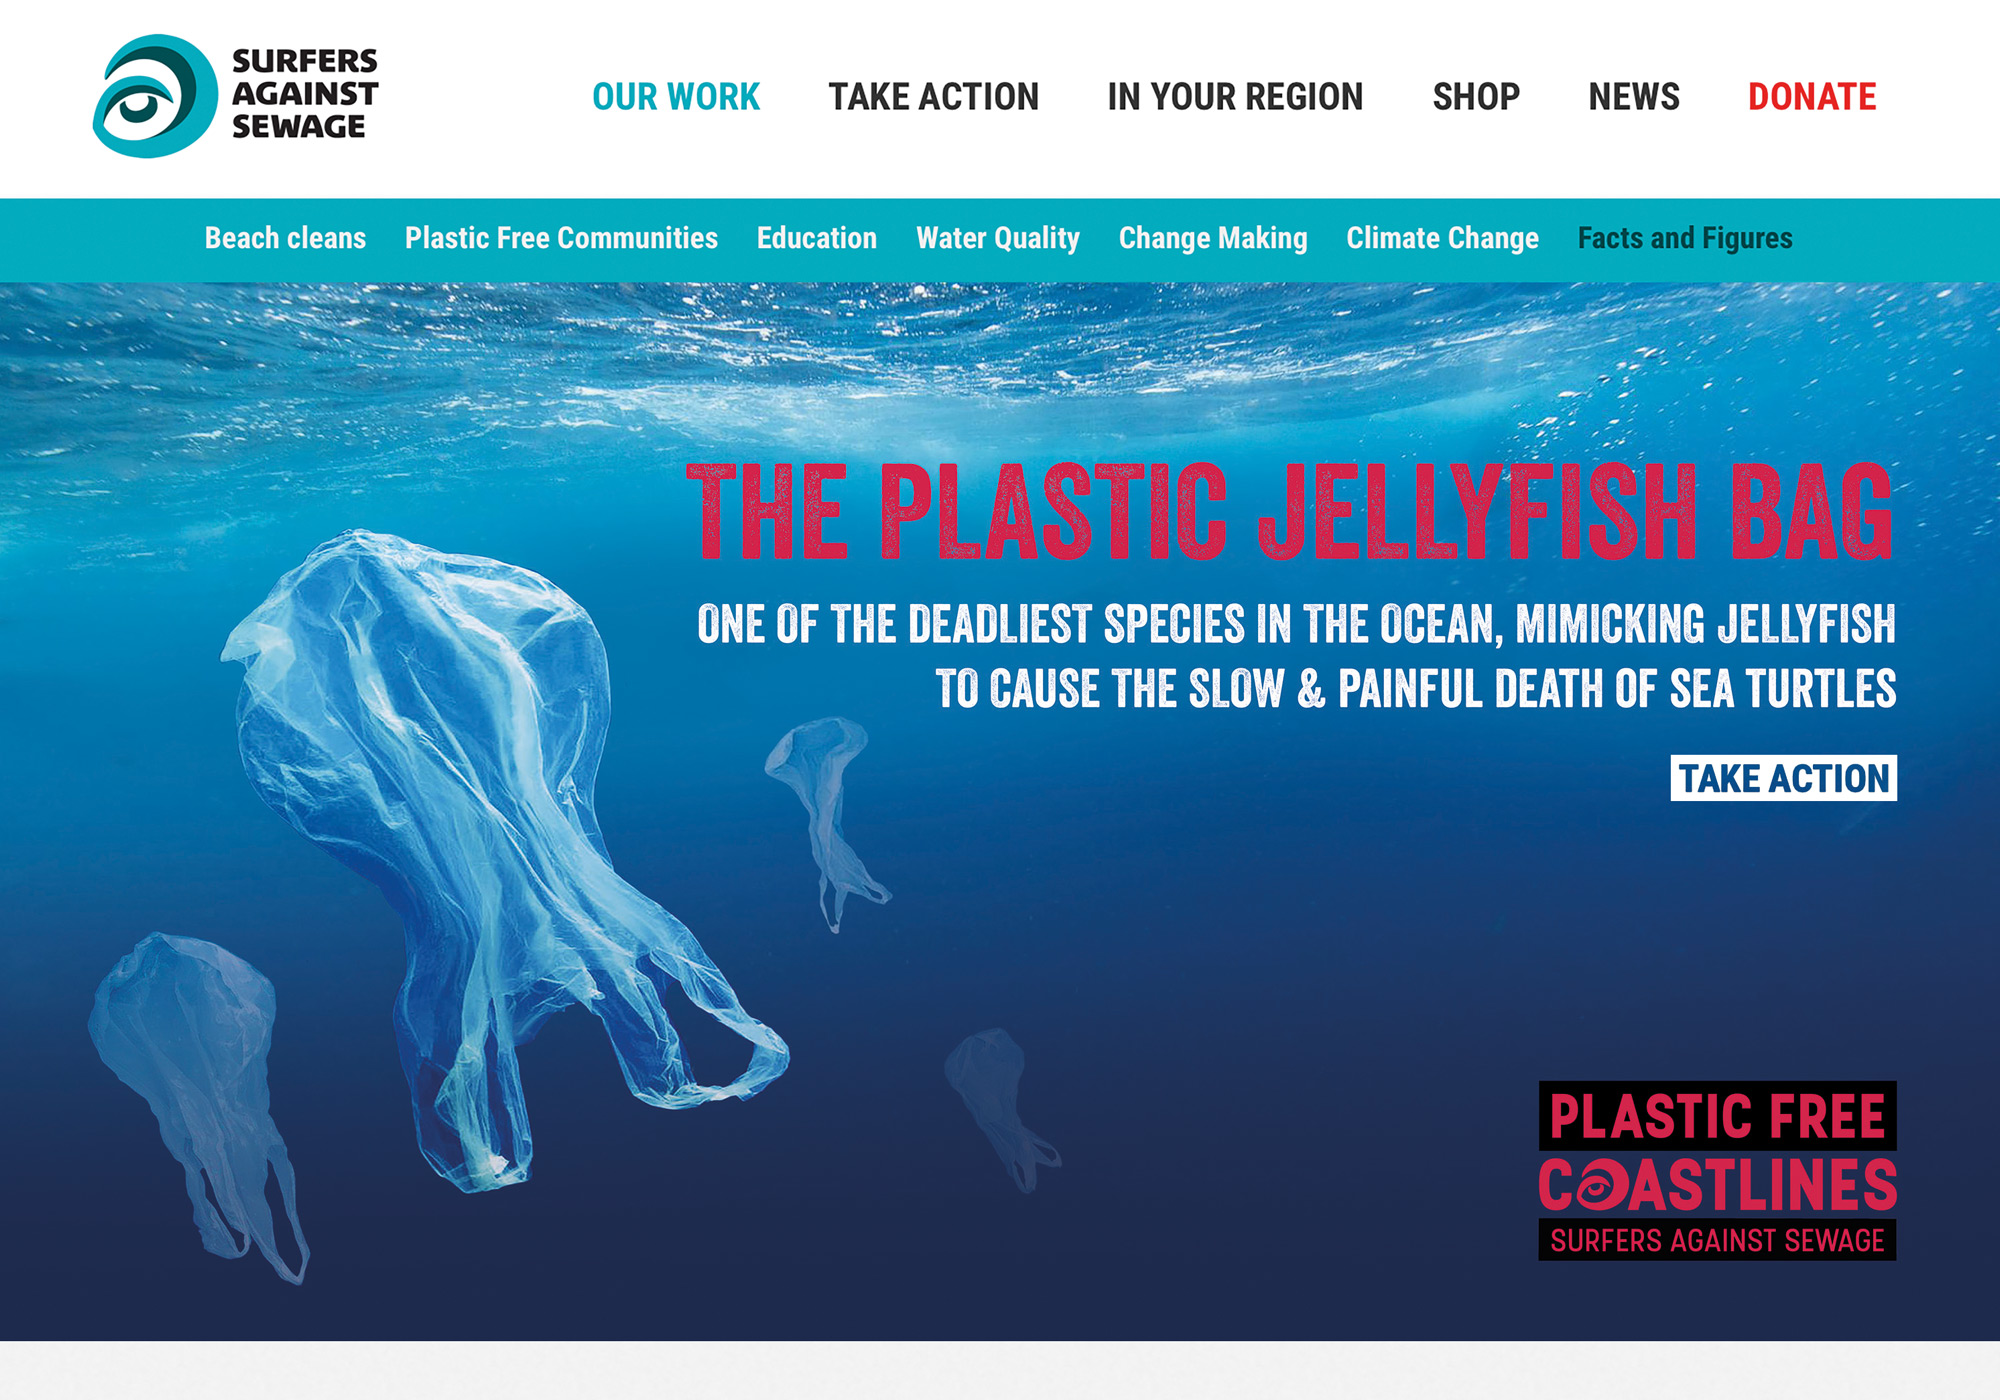 Surfers-Against-Sewage-Plastic-Free-Coastlines-Jelly-Fish-Bag-Design